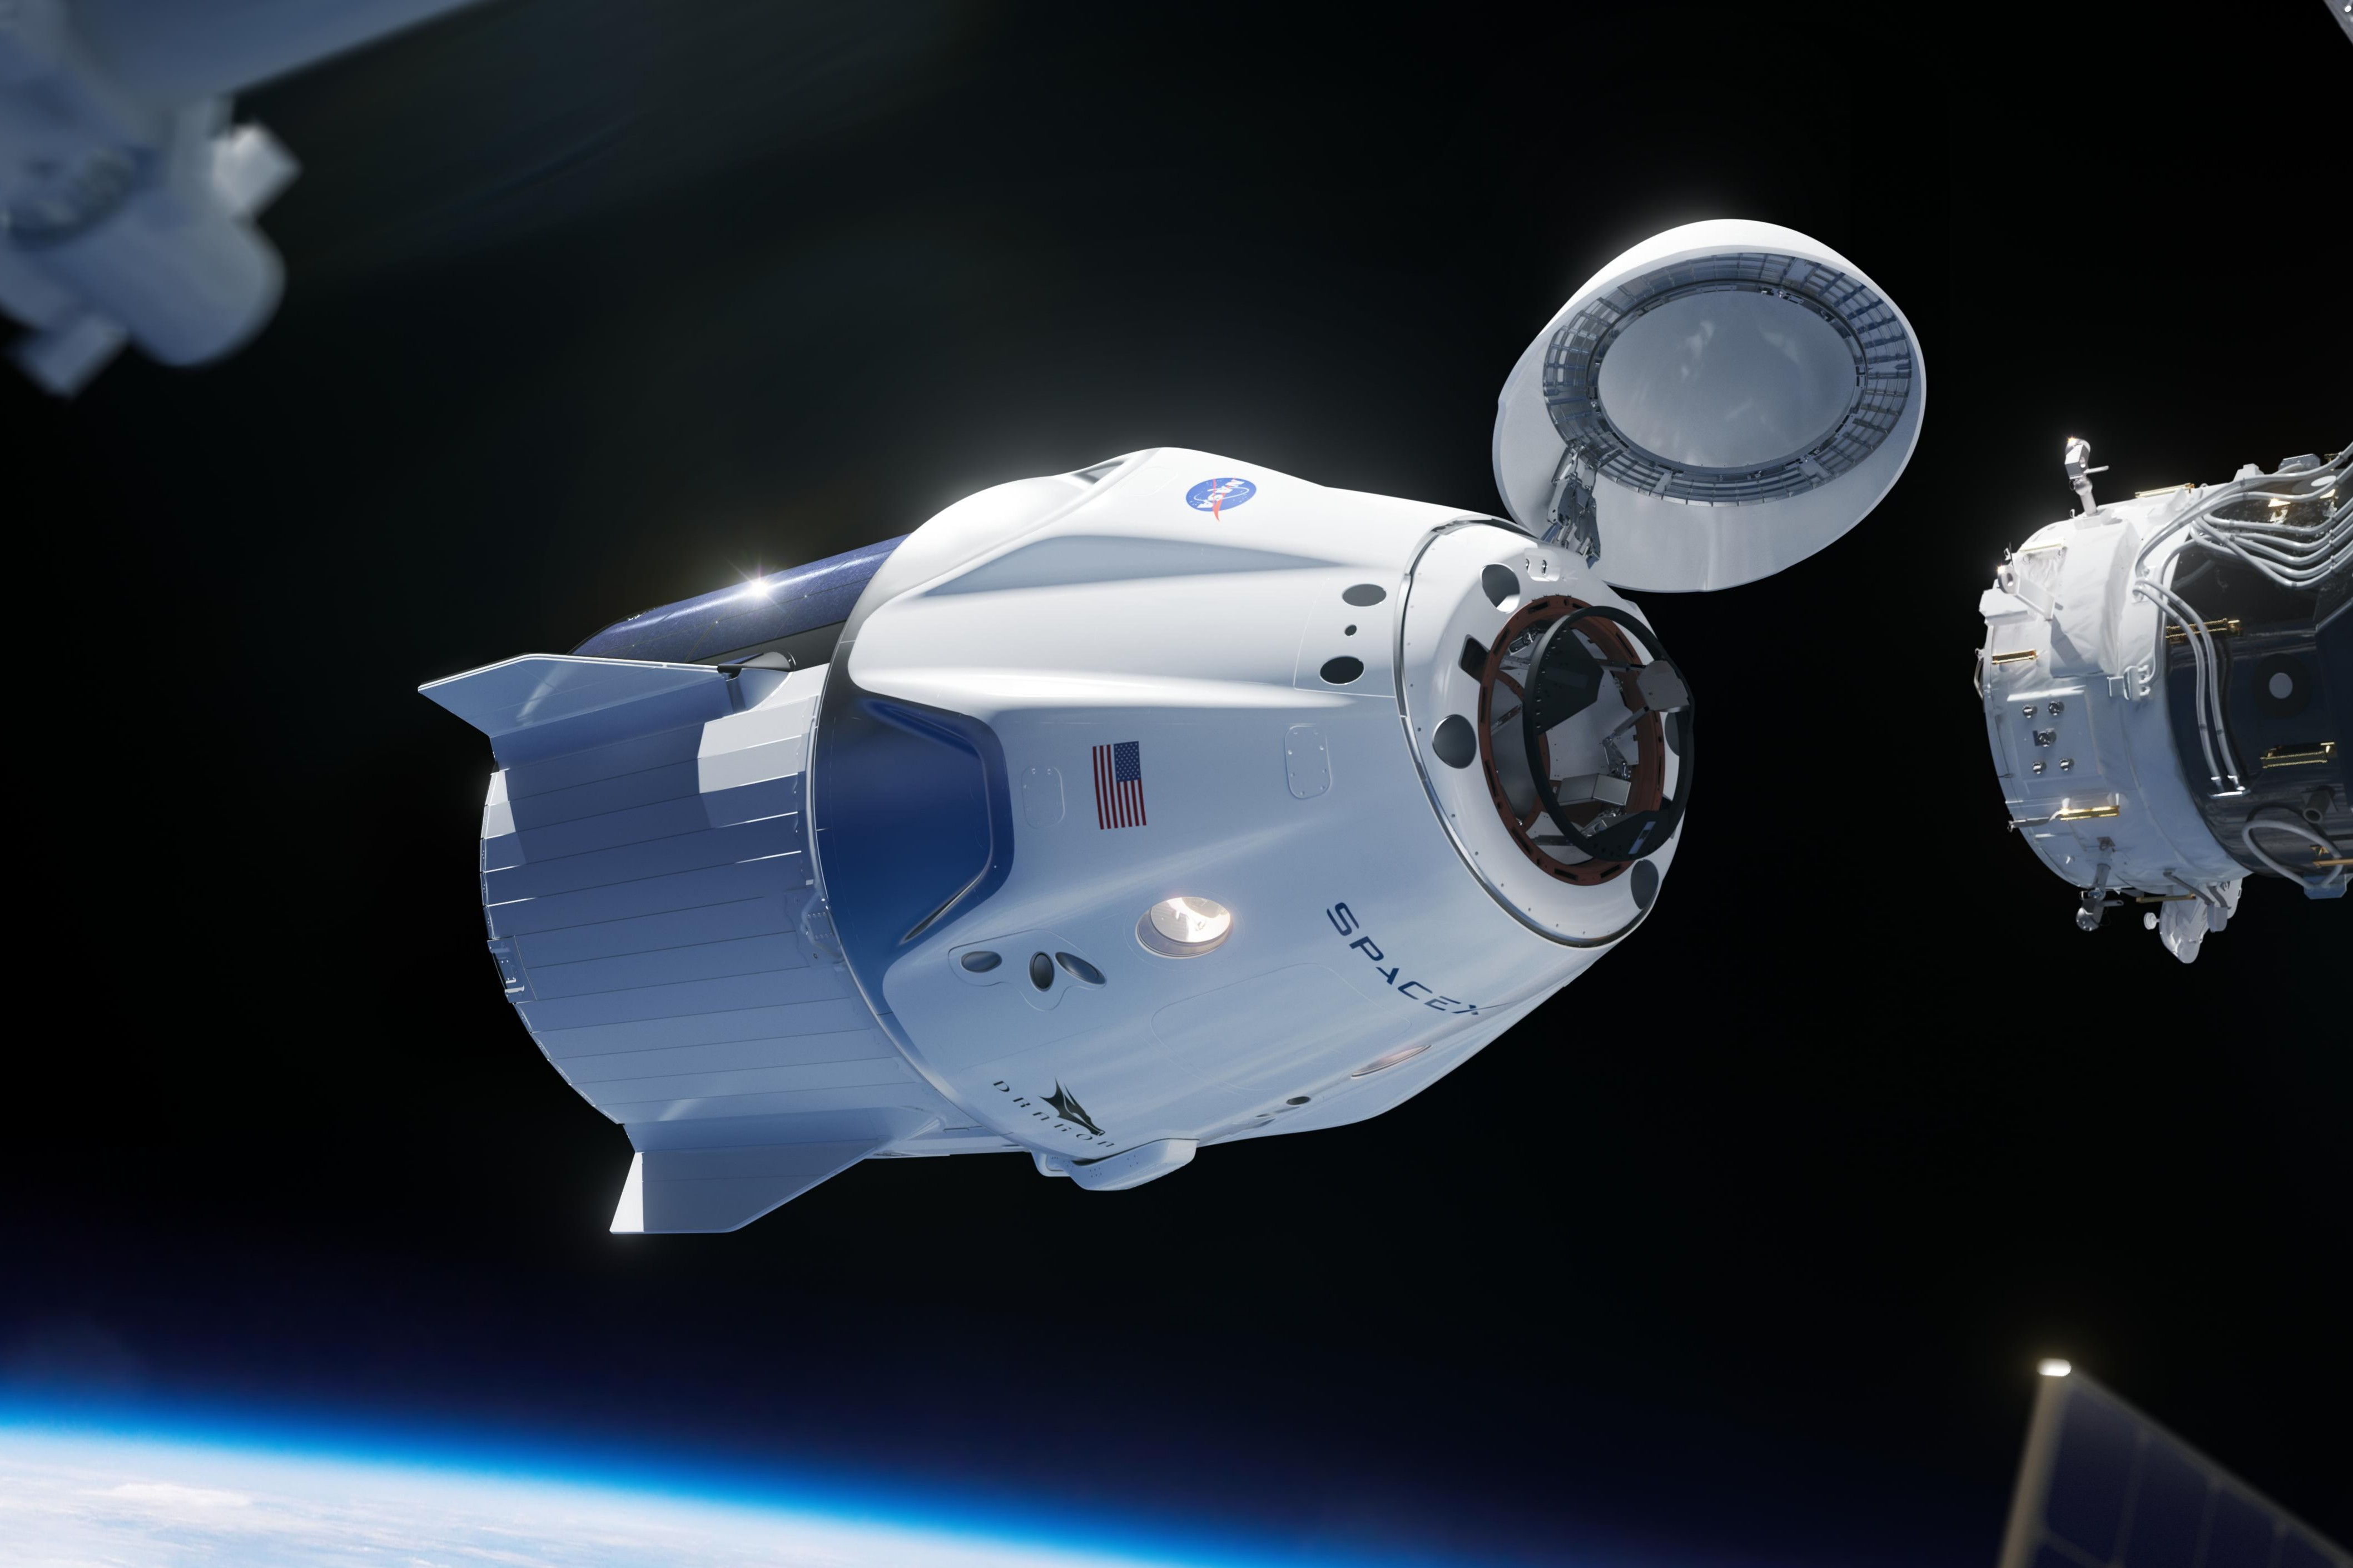 SpaceX launch: NASA astronauts begin historic mission on private spaceship